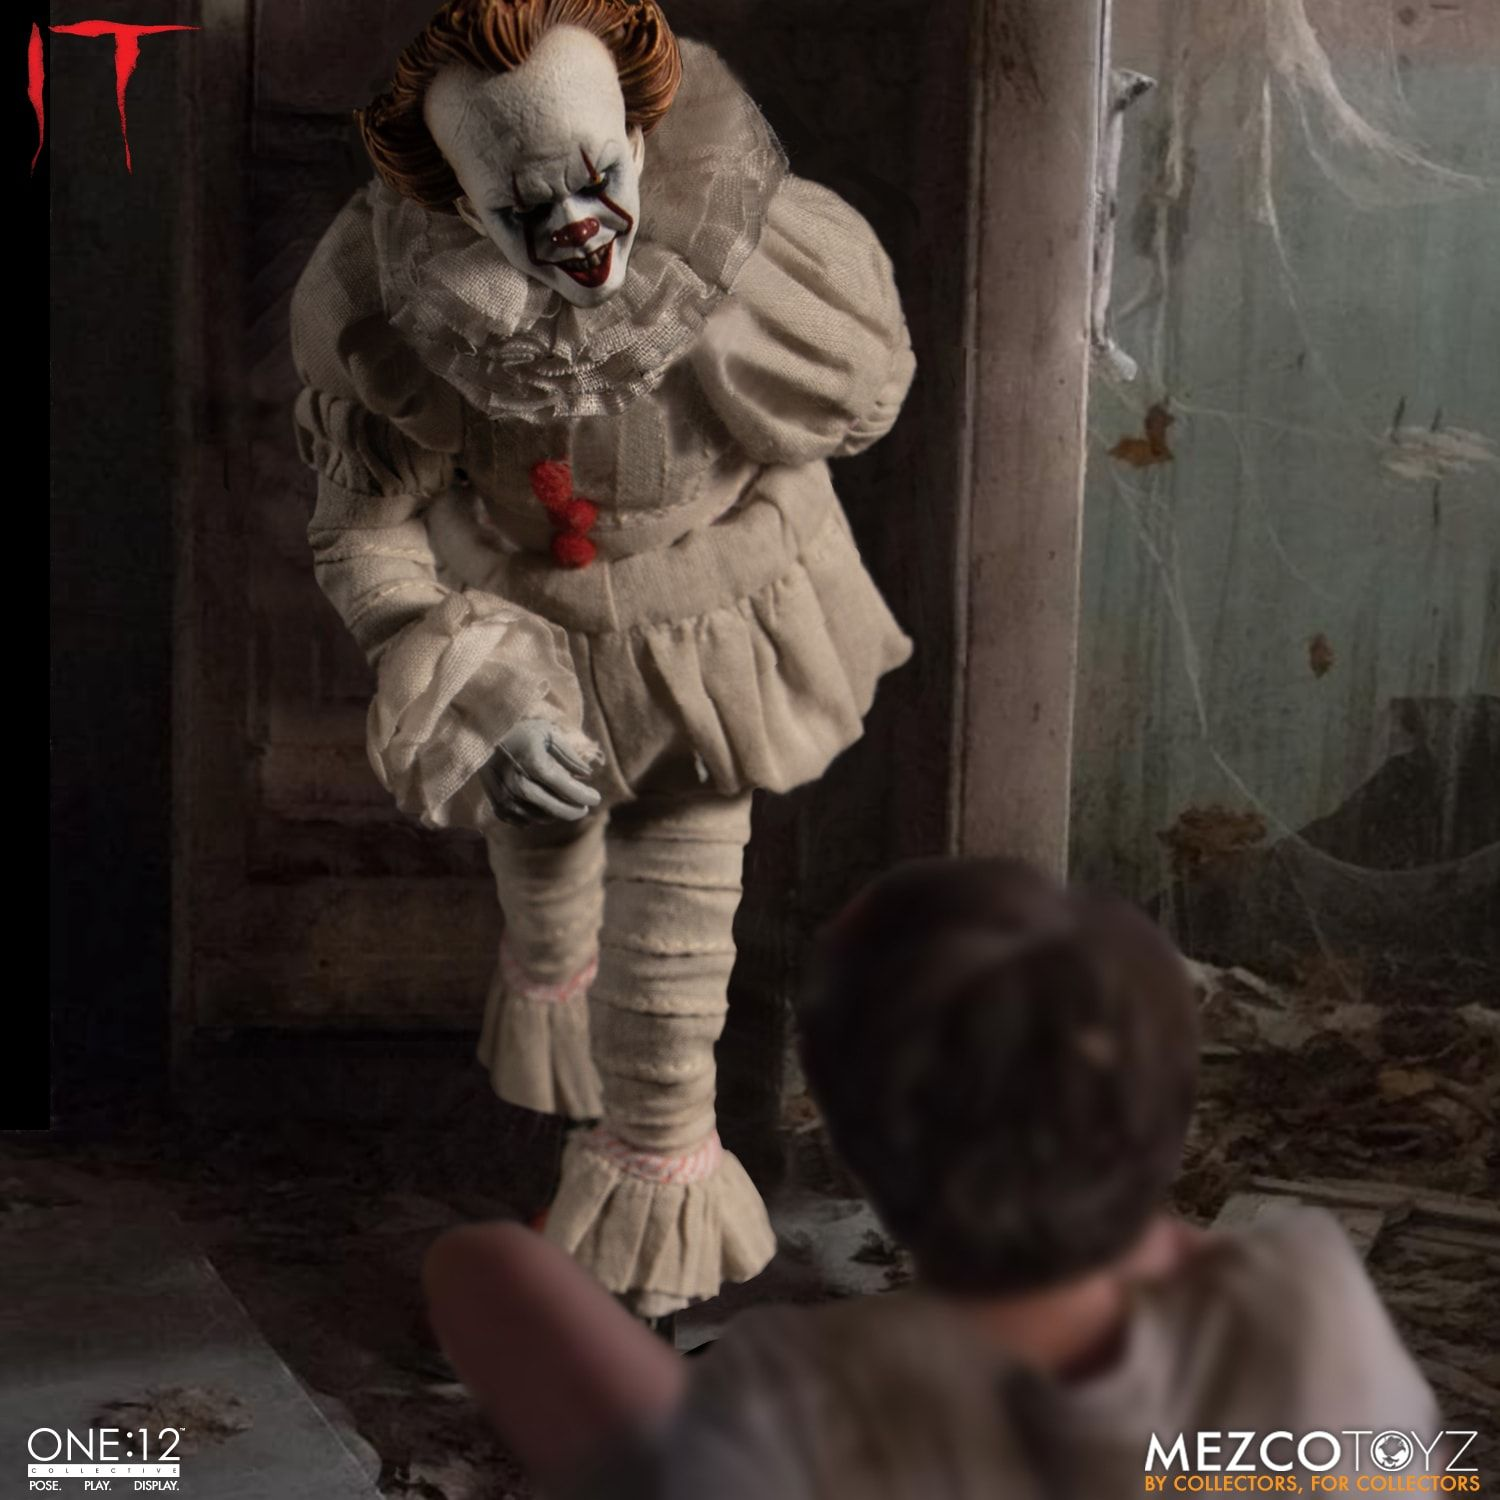 Mezco One:12 PENNYWISE IT BALLOON WITH A PAIR OF HOLDING HANDS Accessories